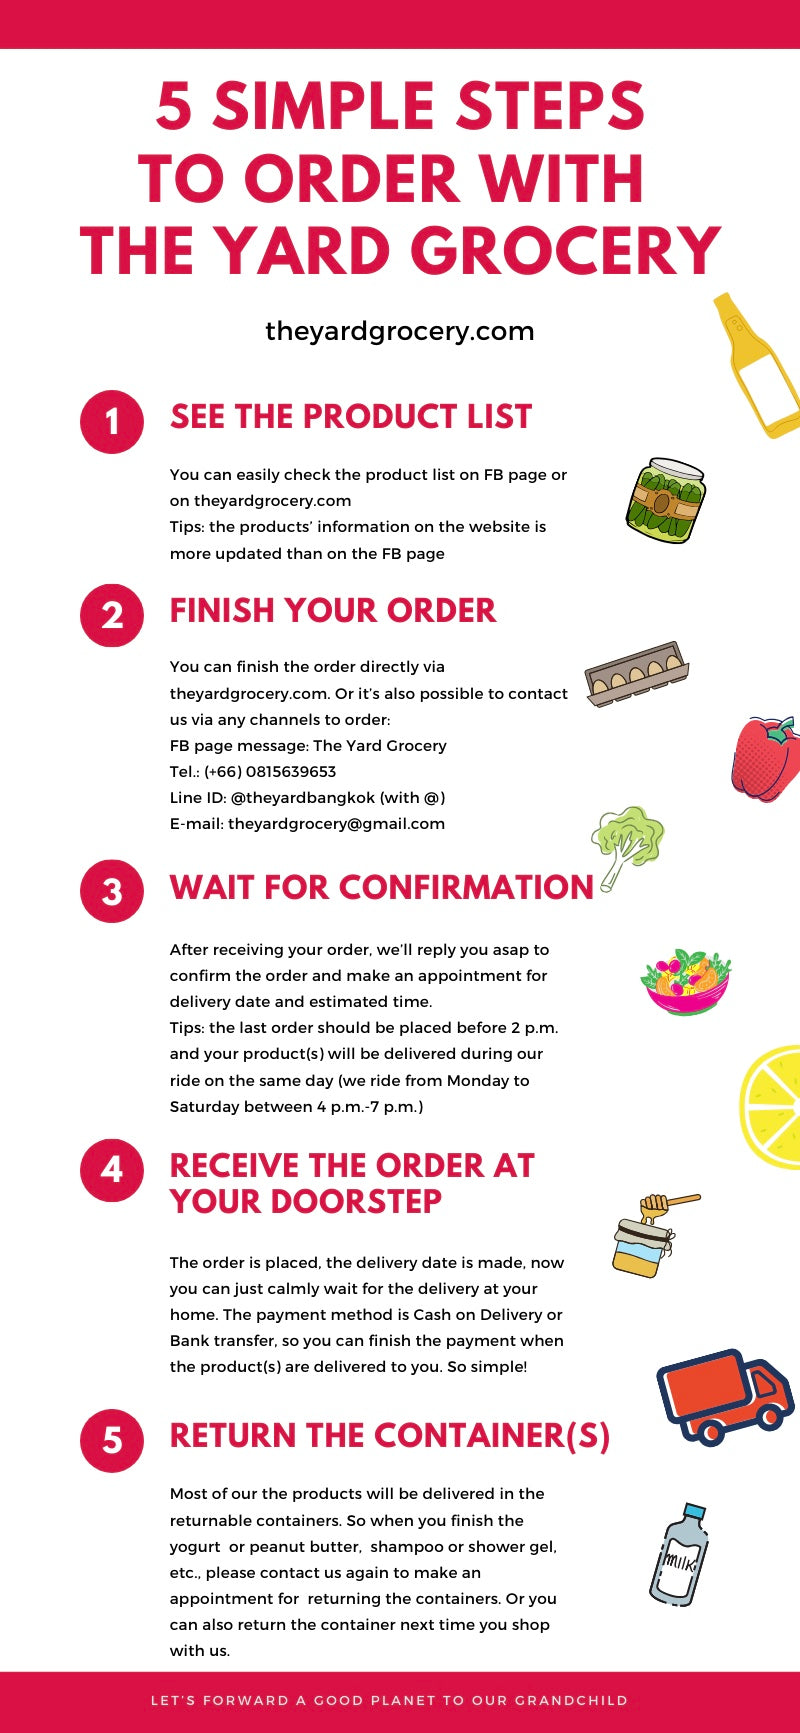 How to order with The Yard Grocery